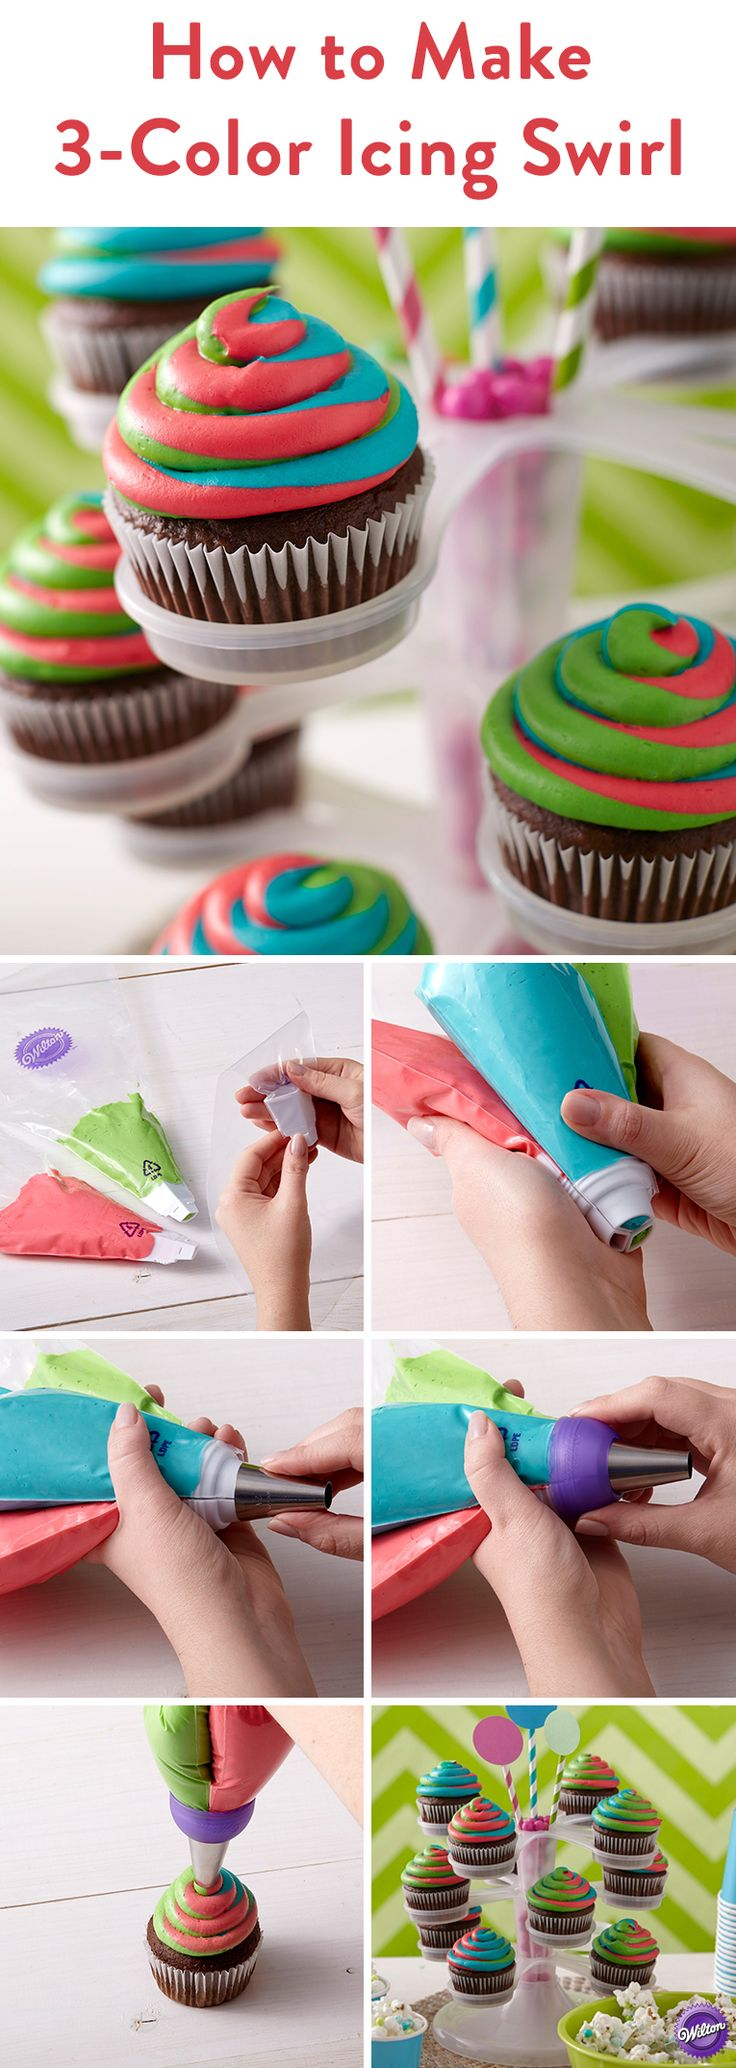 Best 20+ Rainbow cupcakes ideas on Pinterest | Rainbow pillow ...